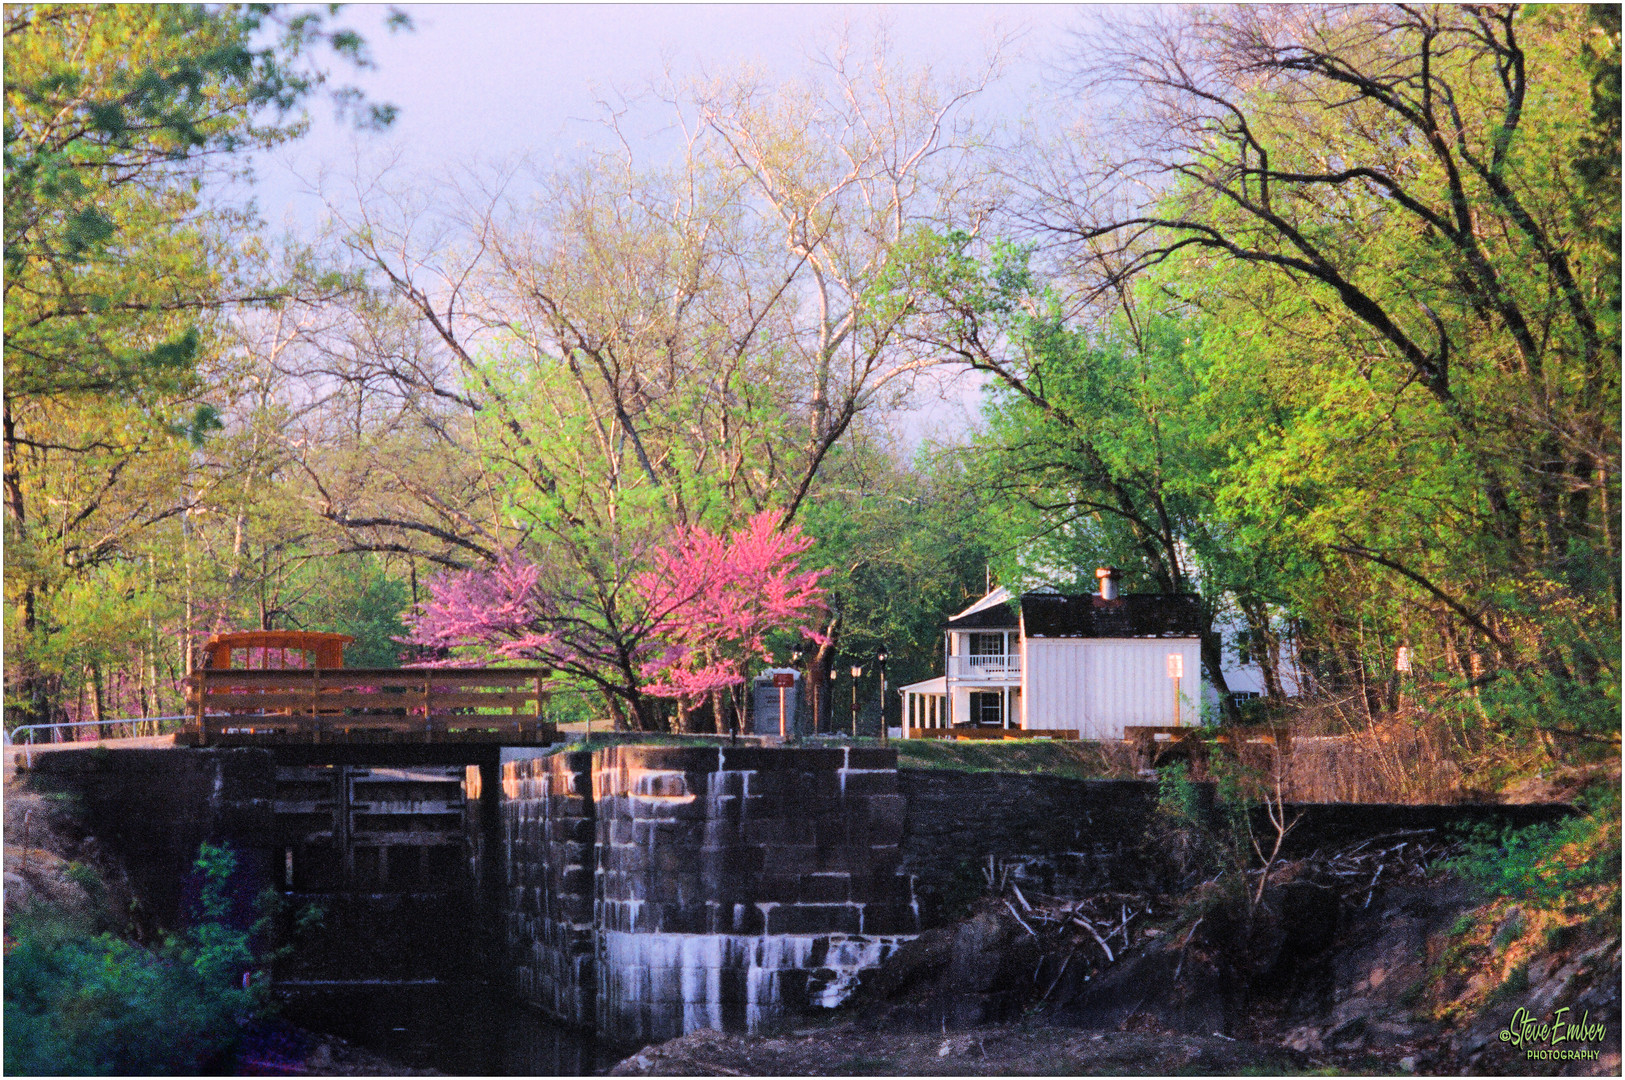 C & O Canal at Great Falls in Springtime